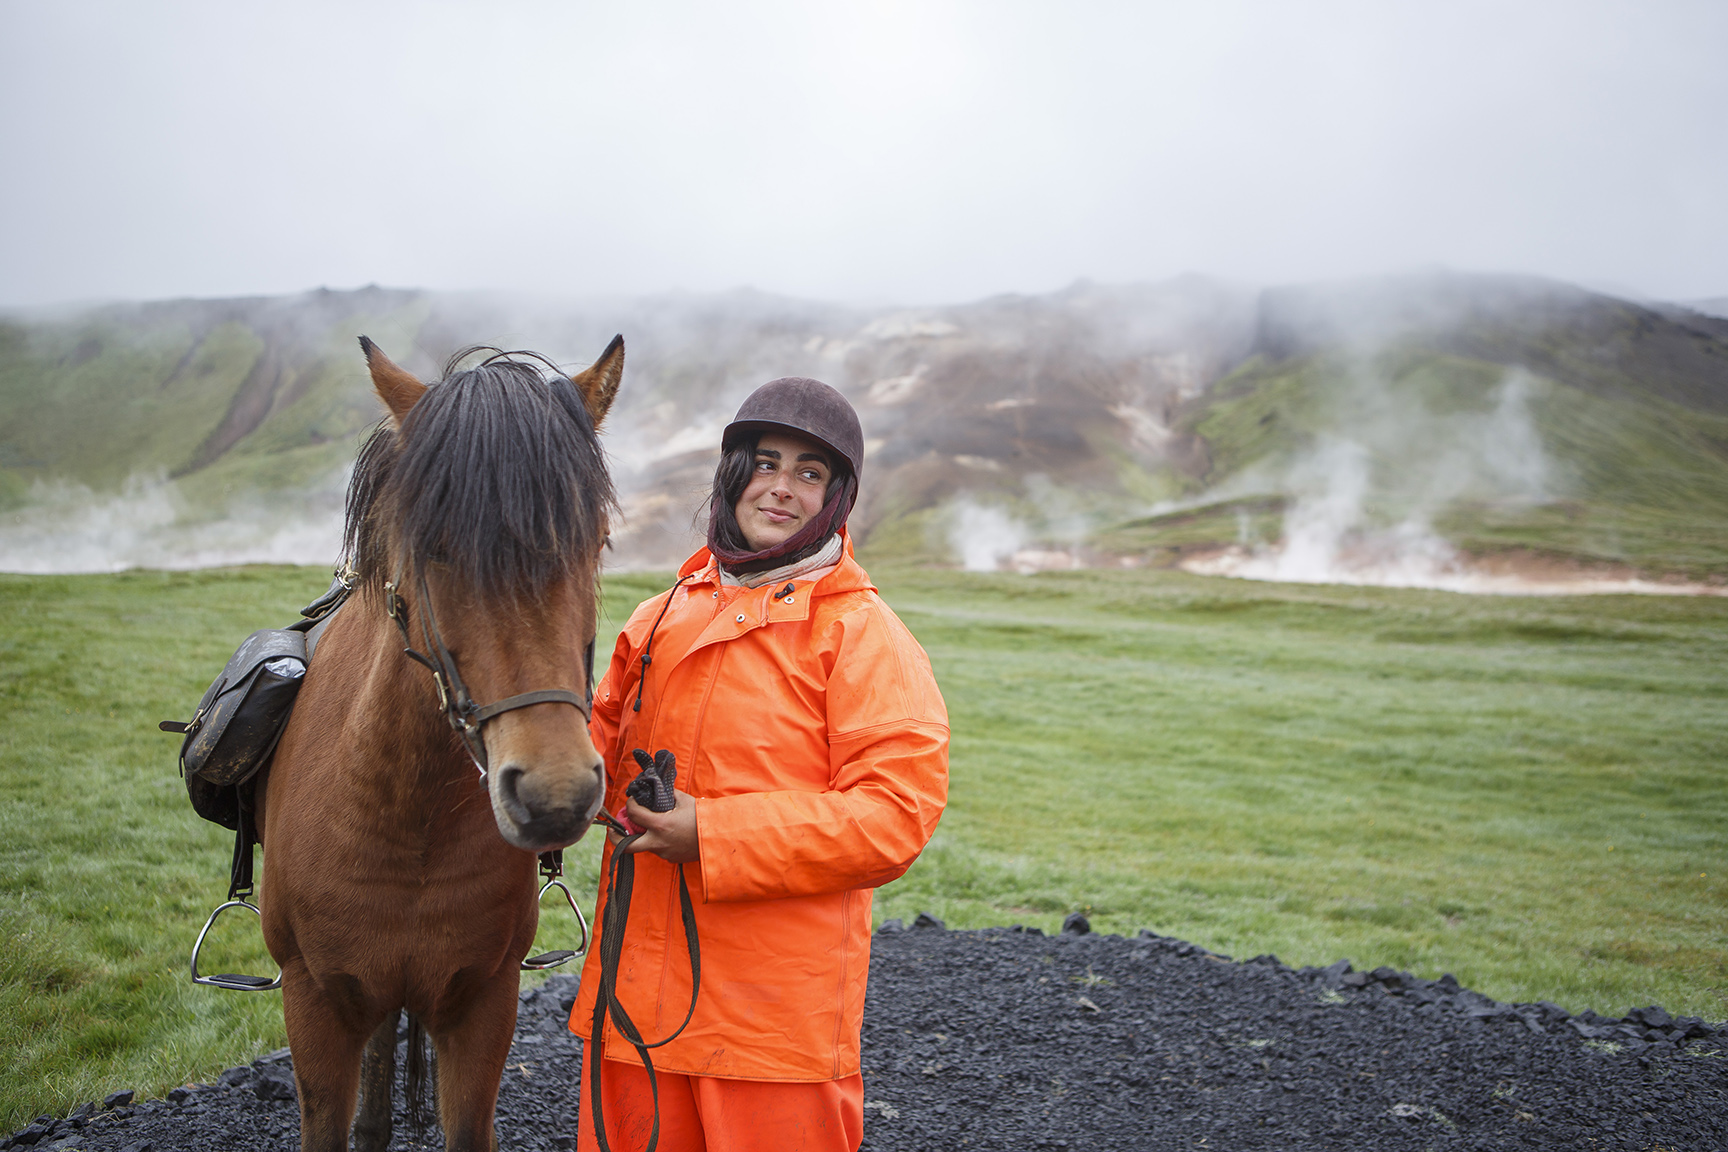 A woman with a riding helmet stands beside a horse with a bridle